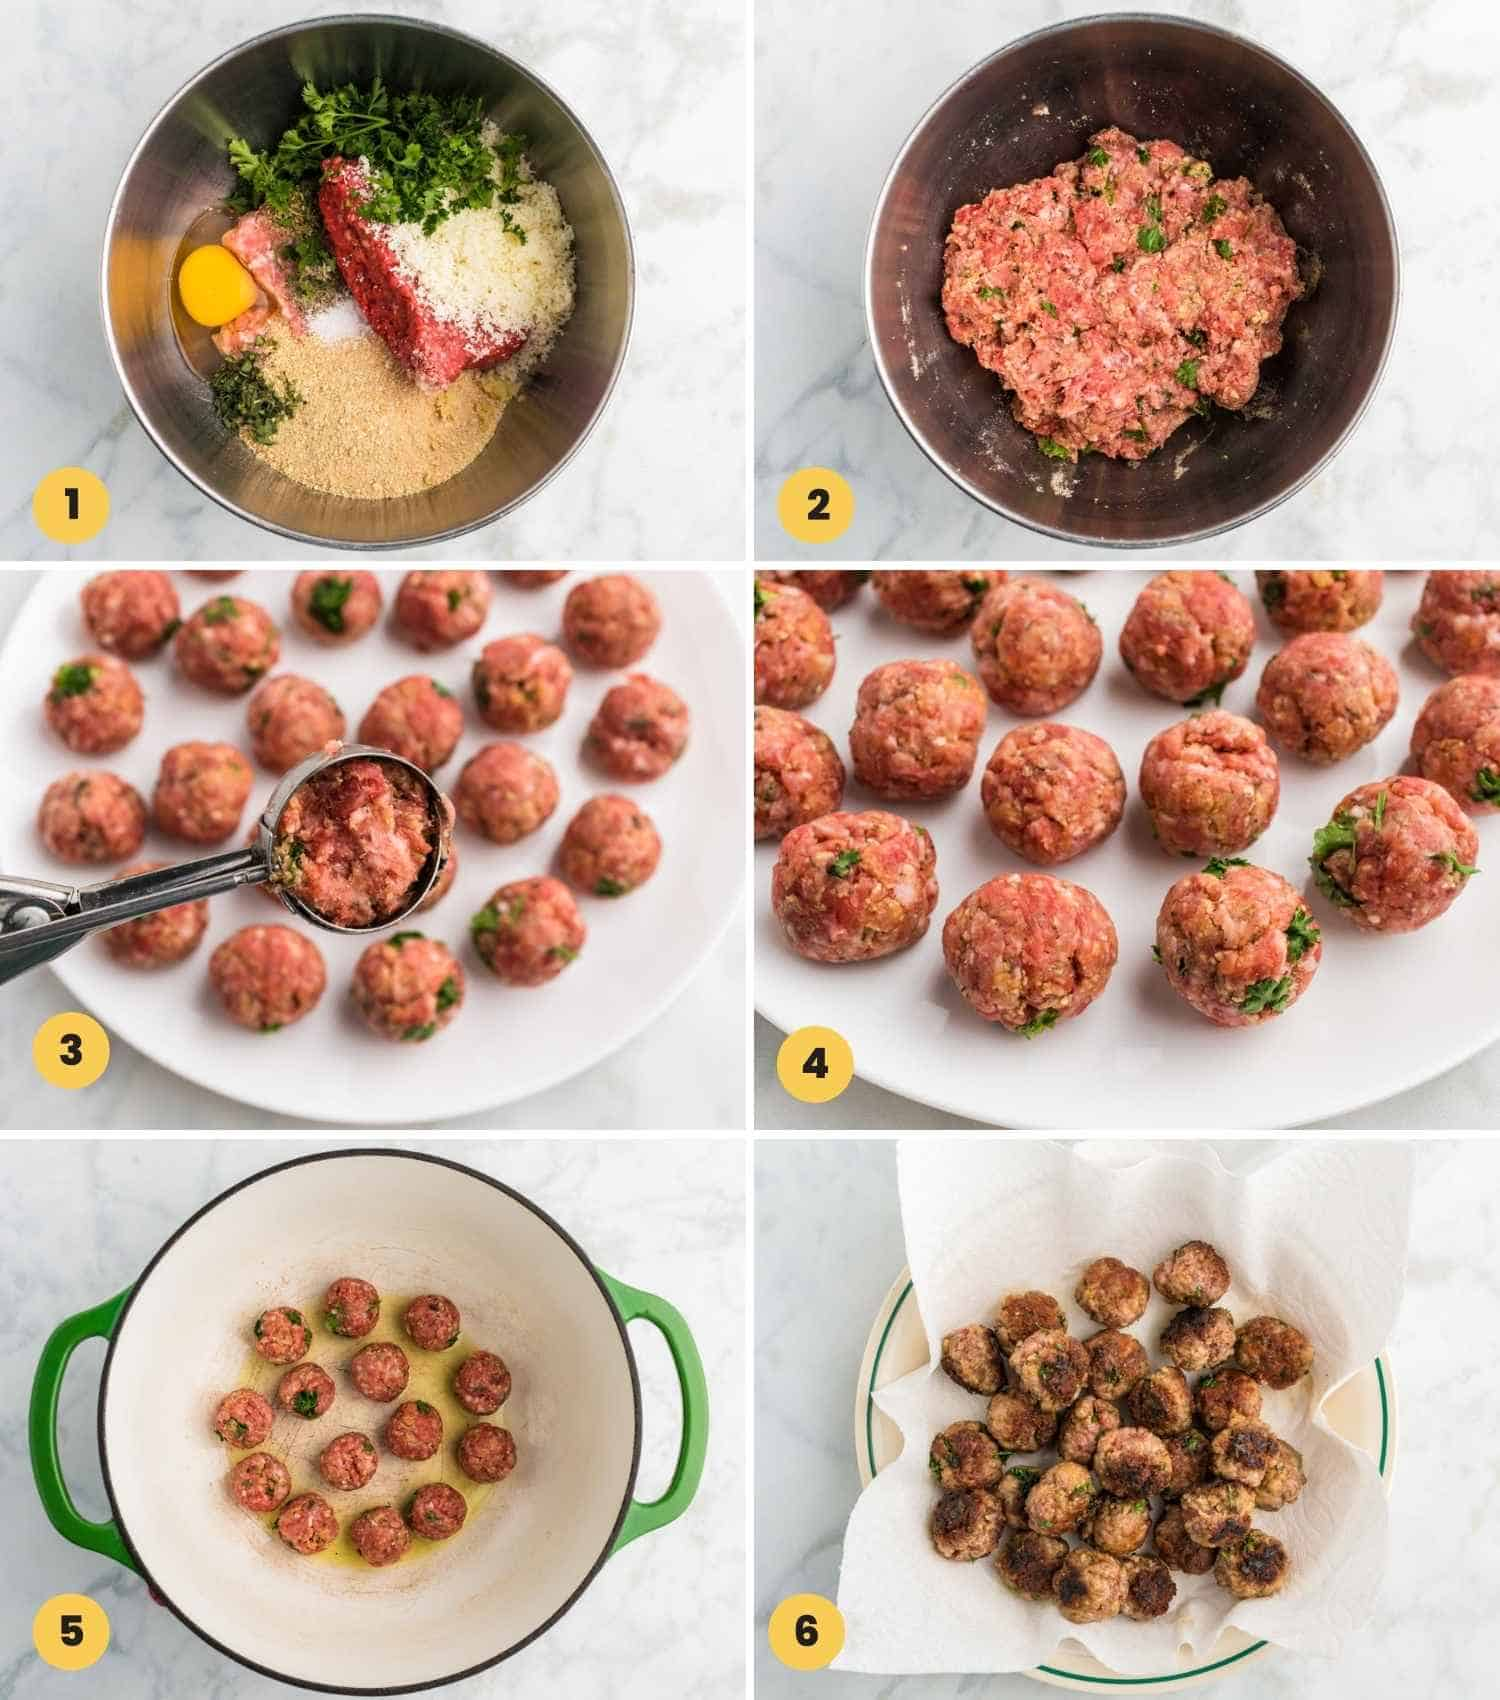 A collage with 6 images showing how to make meatballs for italian wedding soup